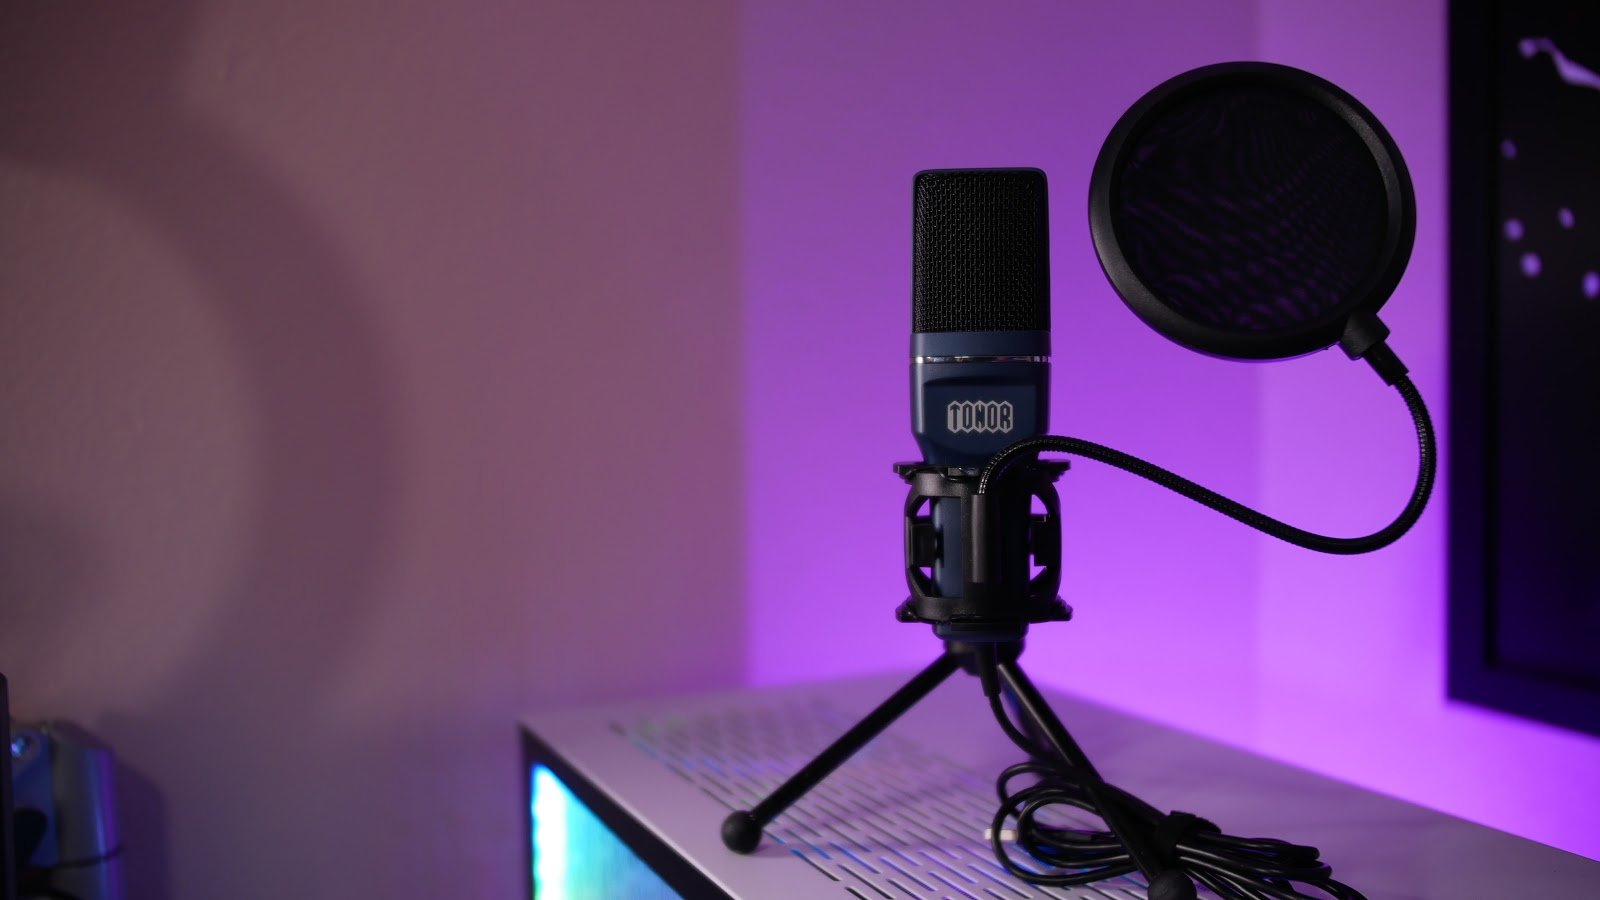 TONOR TC-777 Microphone – WHy is it the best microphone?